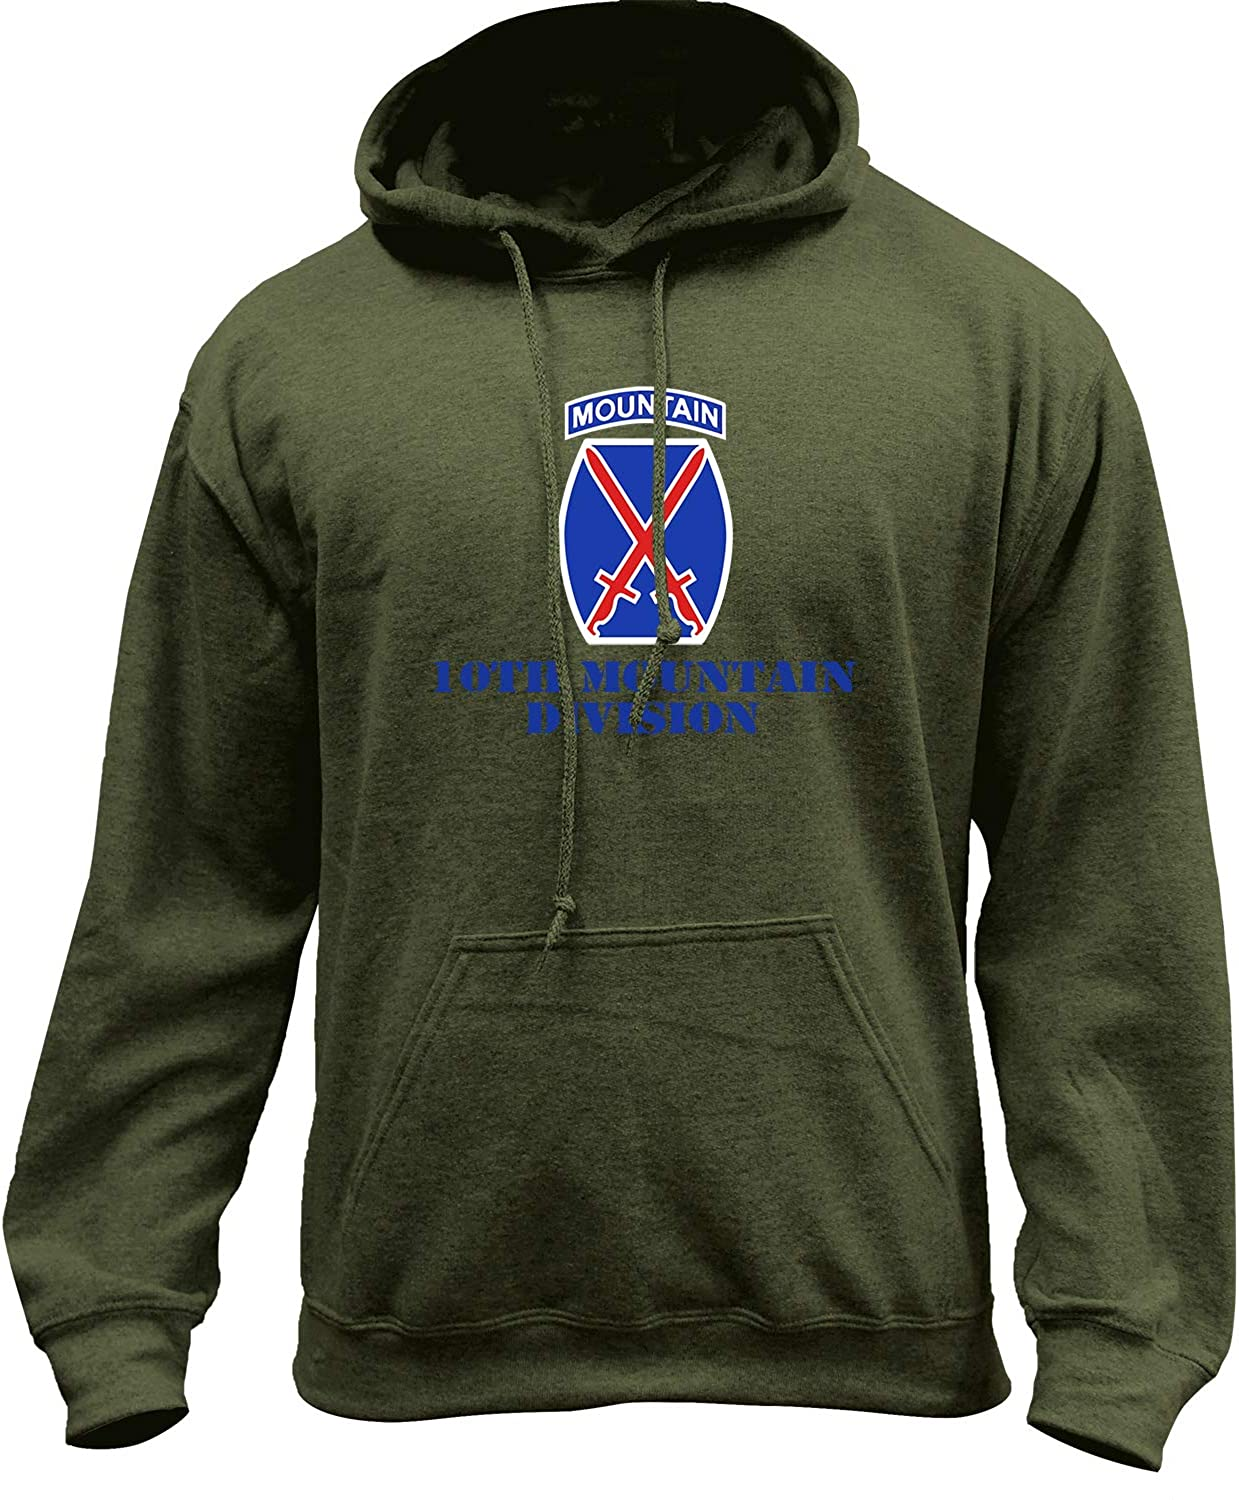 USAMM Army 10th Mountain Division Full Color Veteran Pullover Hoodie